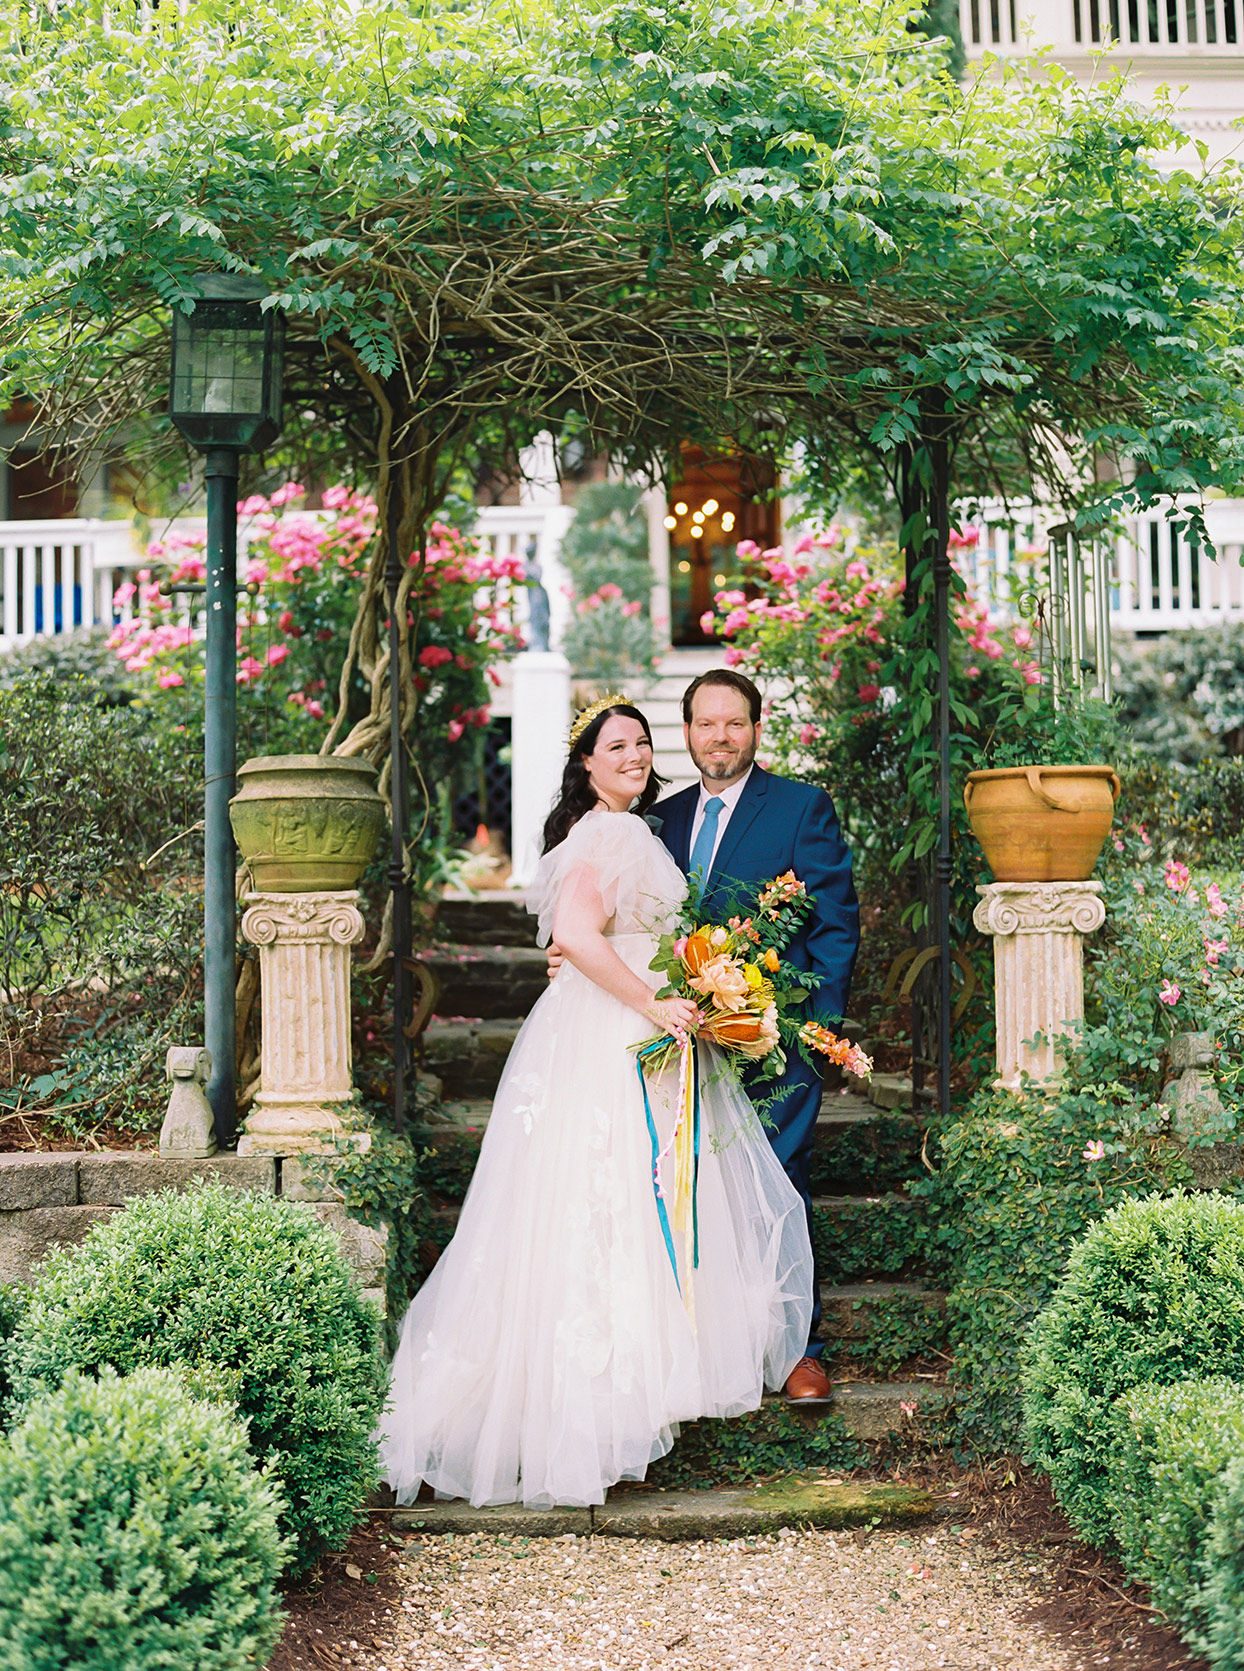 This English Garden Inspired Wedding In North Carolina Was